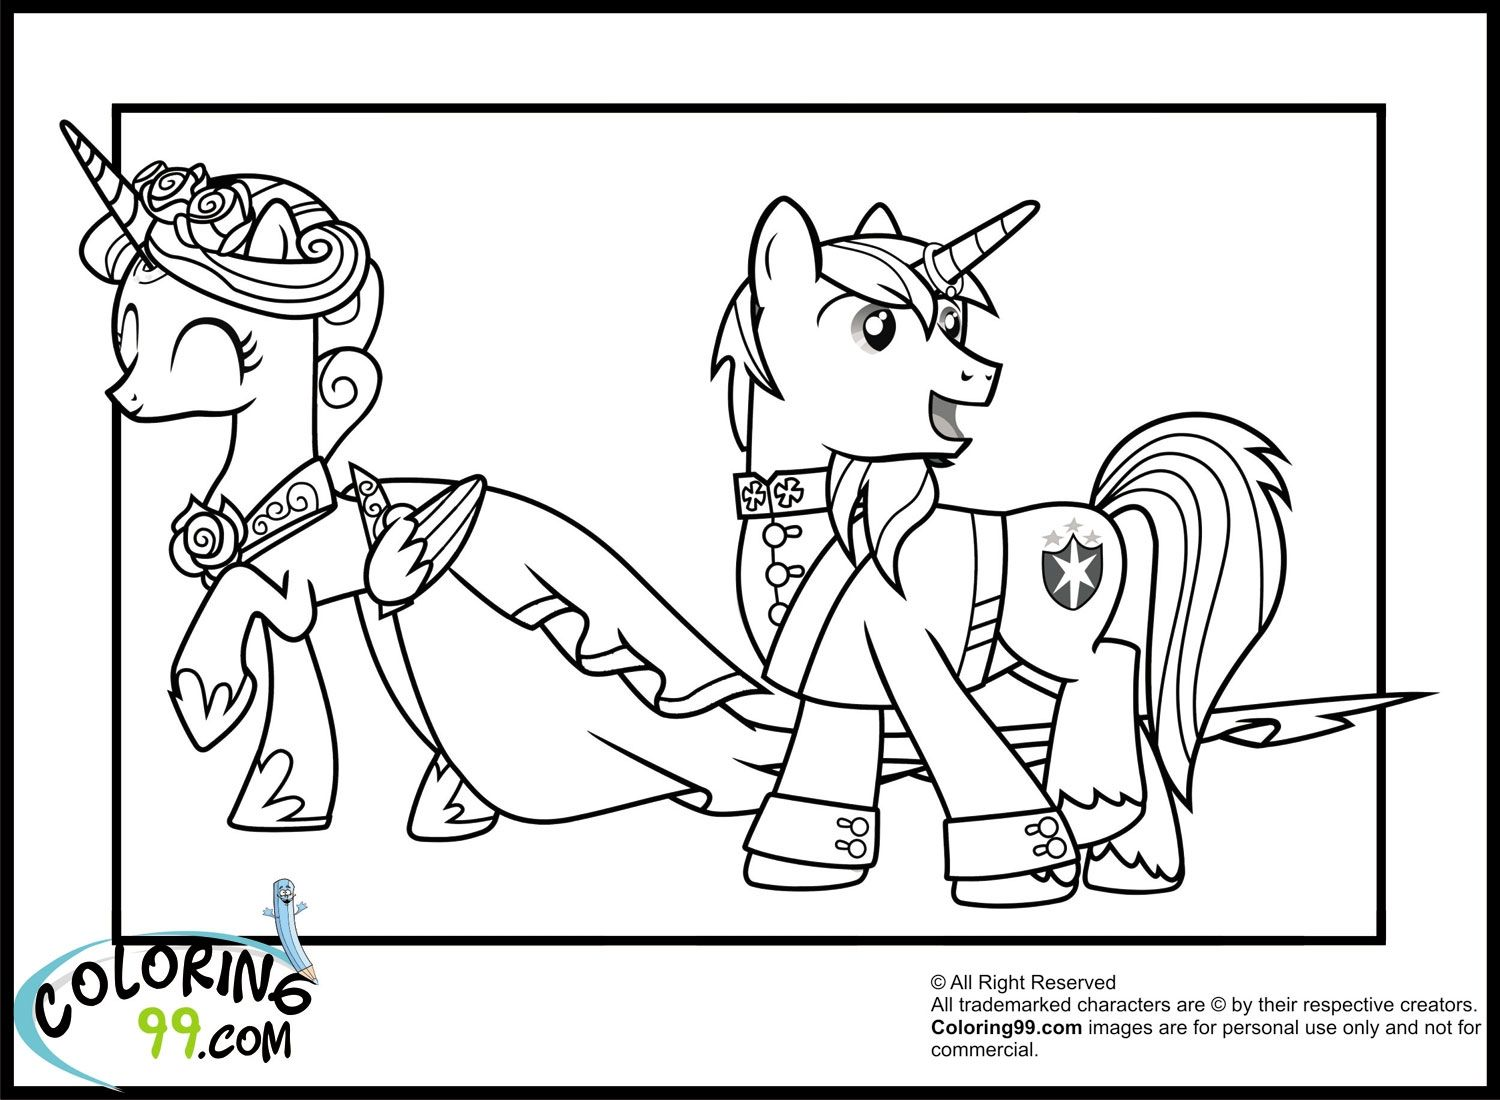 Coloring pages of princess cadence - My Little Pony Coloring Pages Princess Cadence Filly